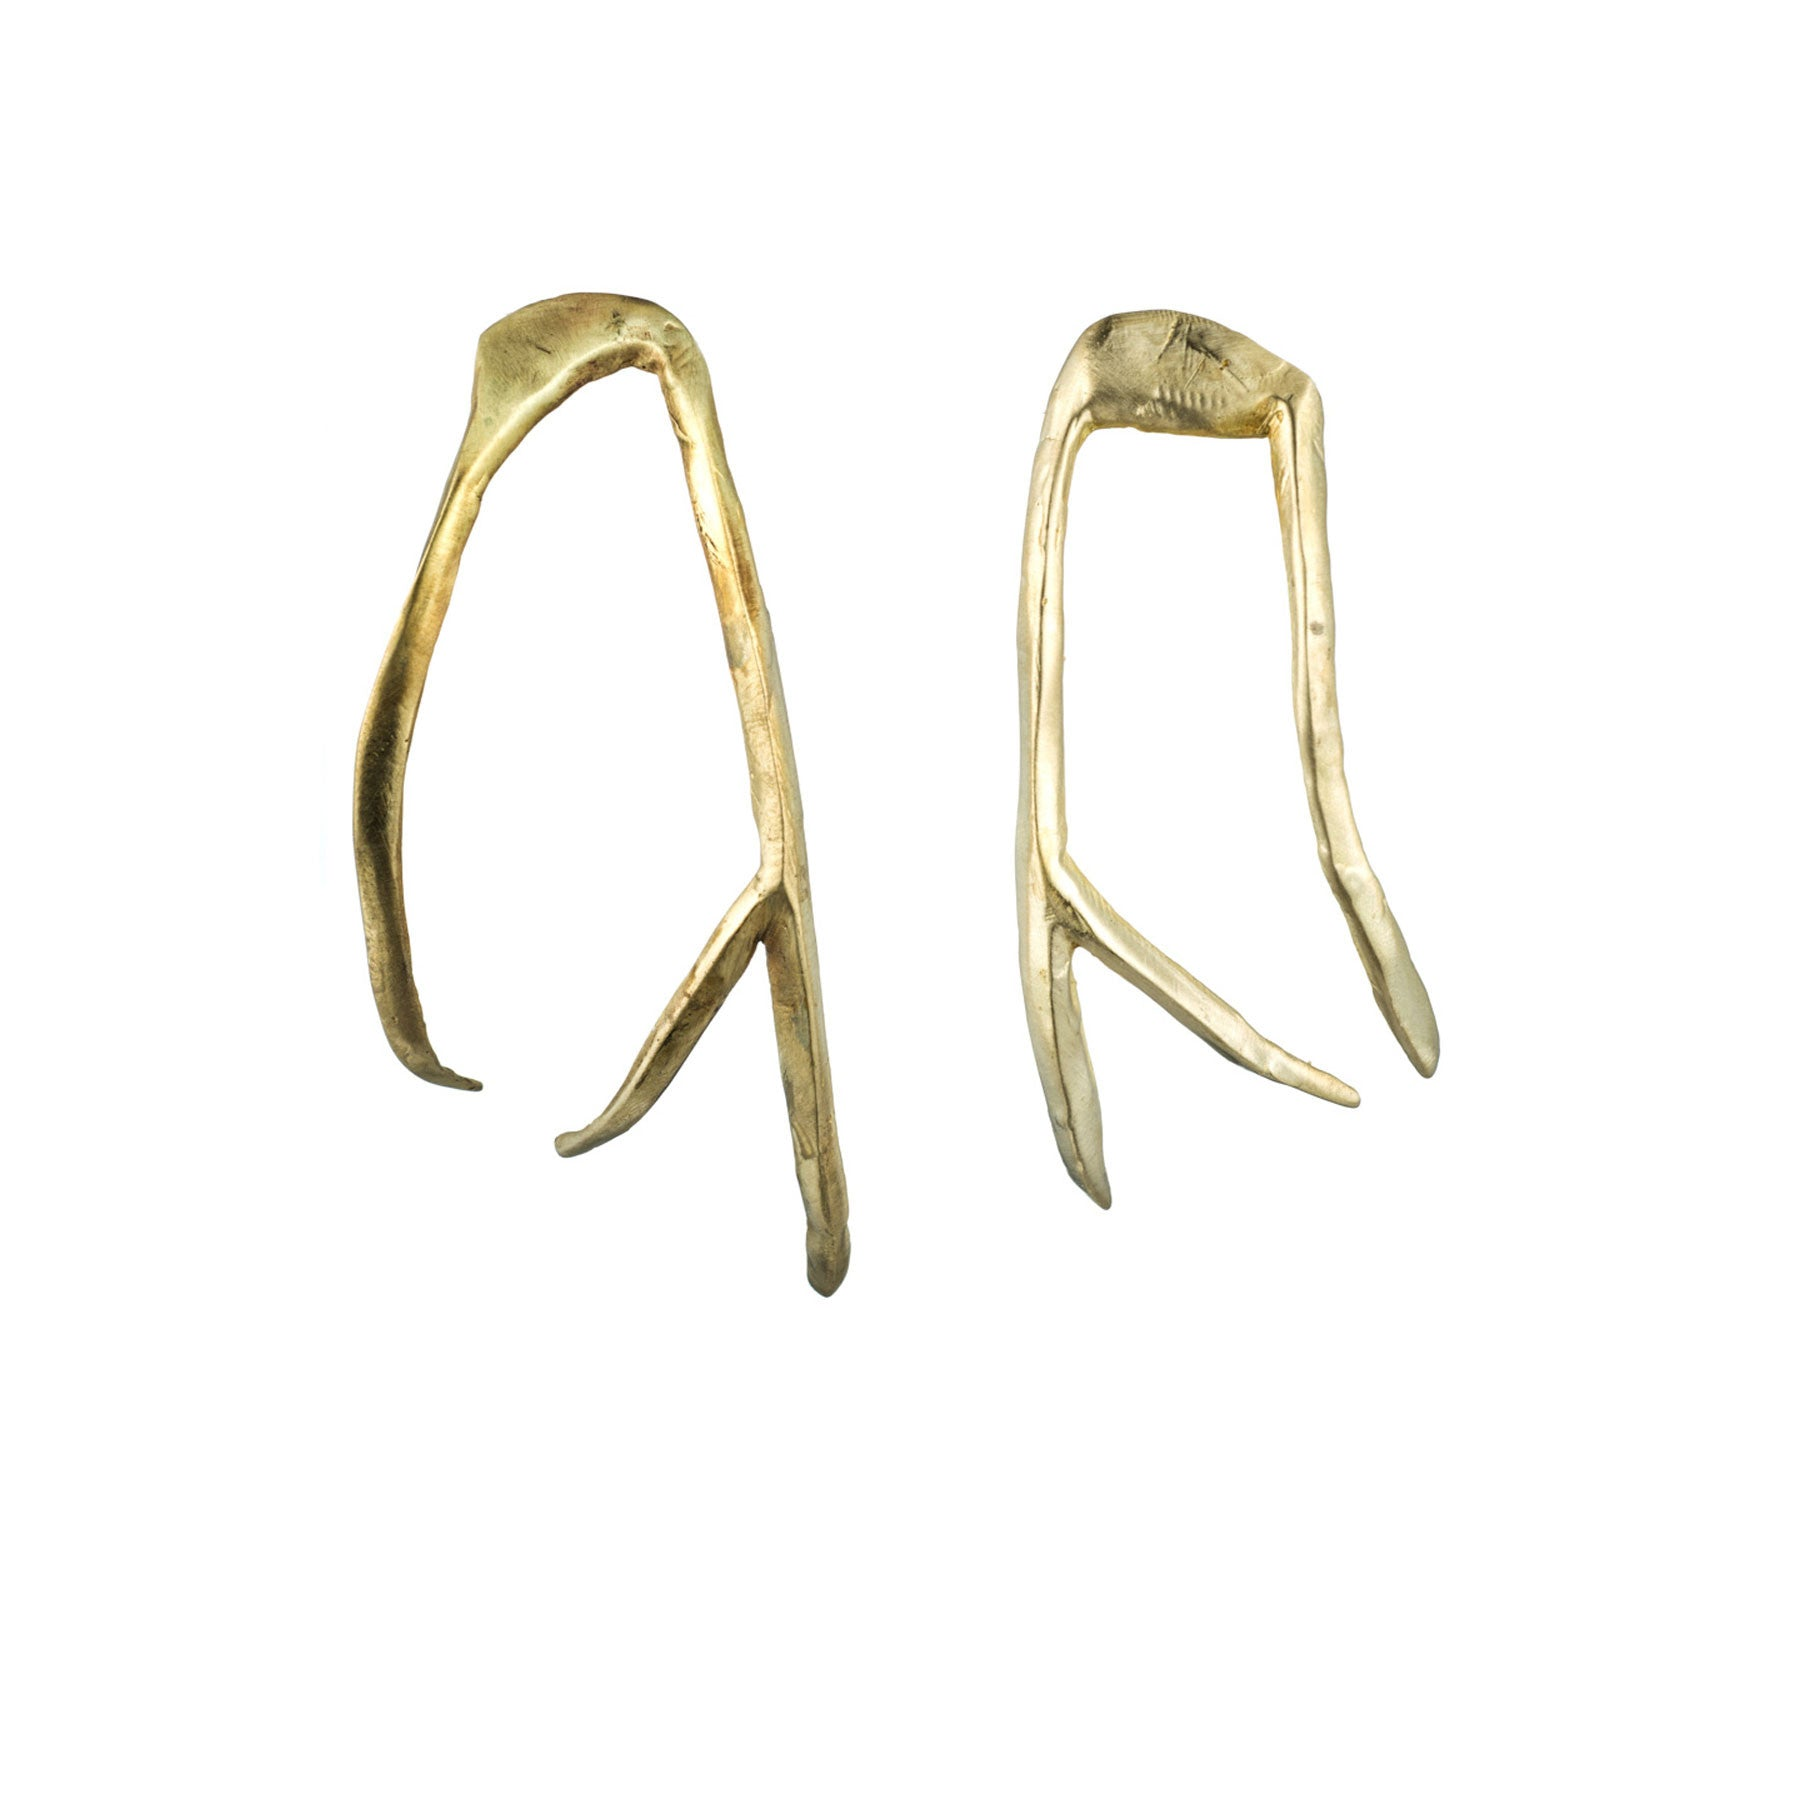 LARGE ANTLER EARRINGS